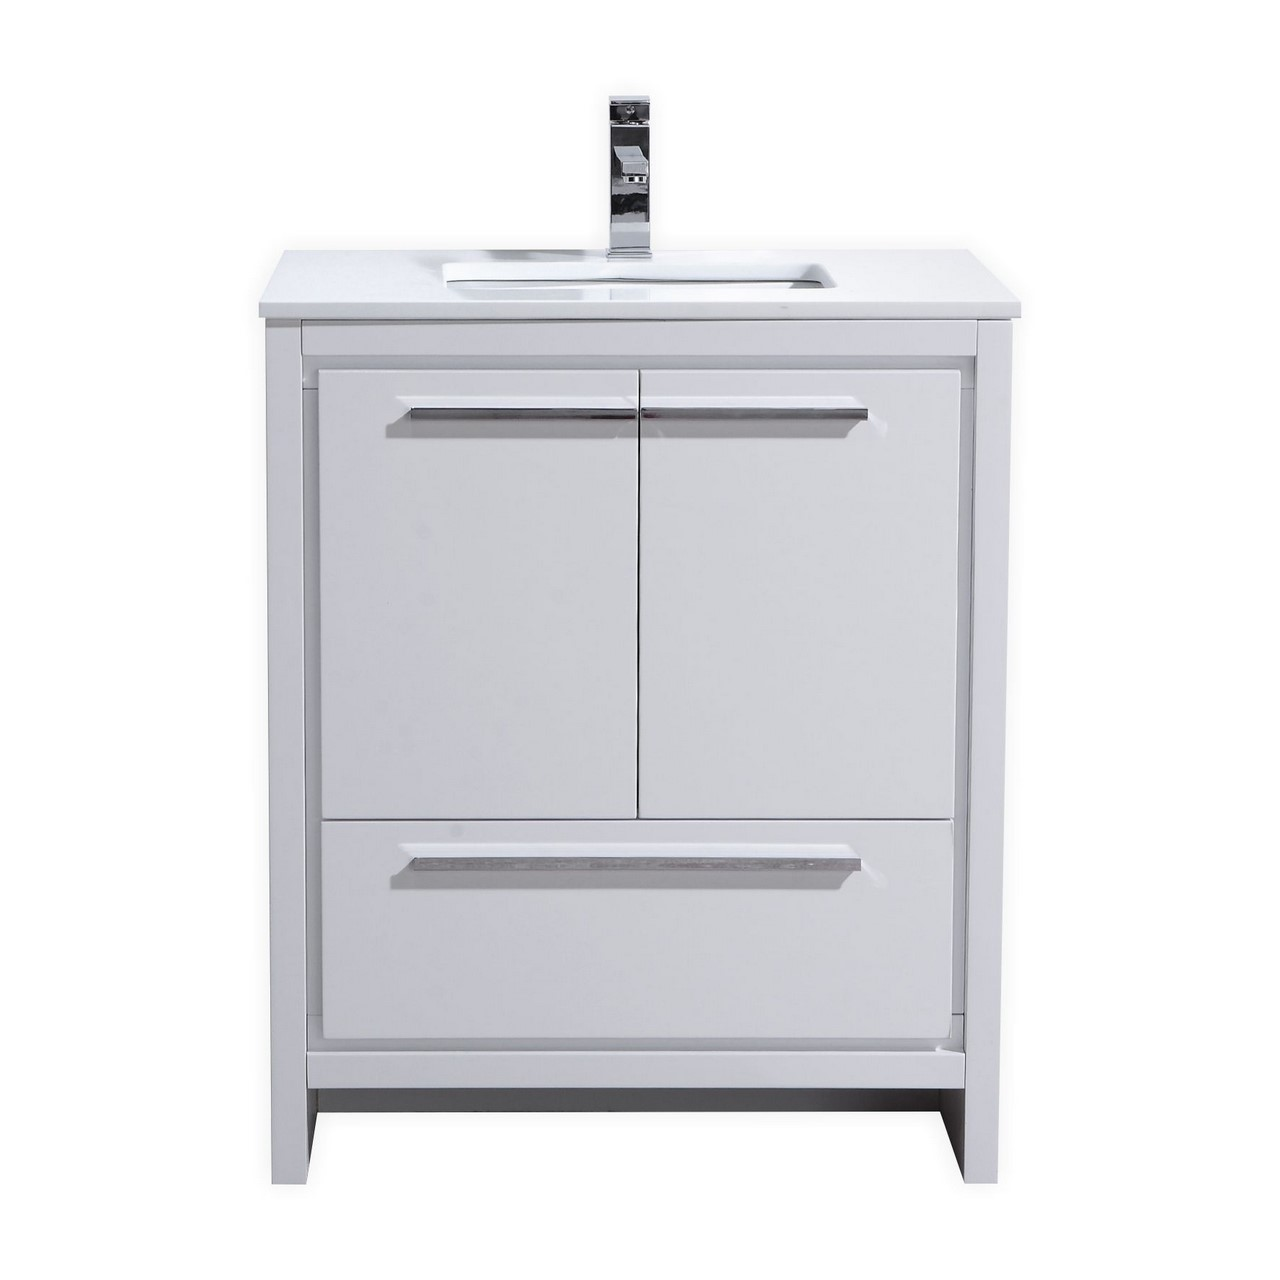 bathroom vanity cabinets white kubebath dolce 30 high gloss white modern bathroom vanity 11803